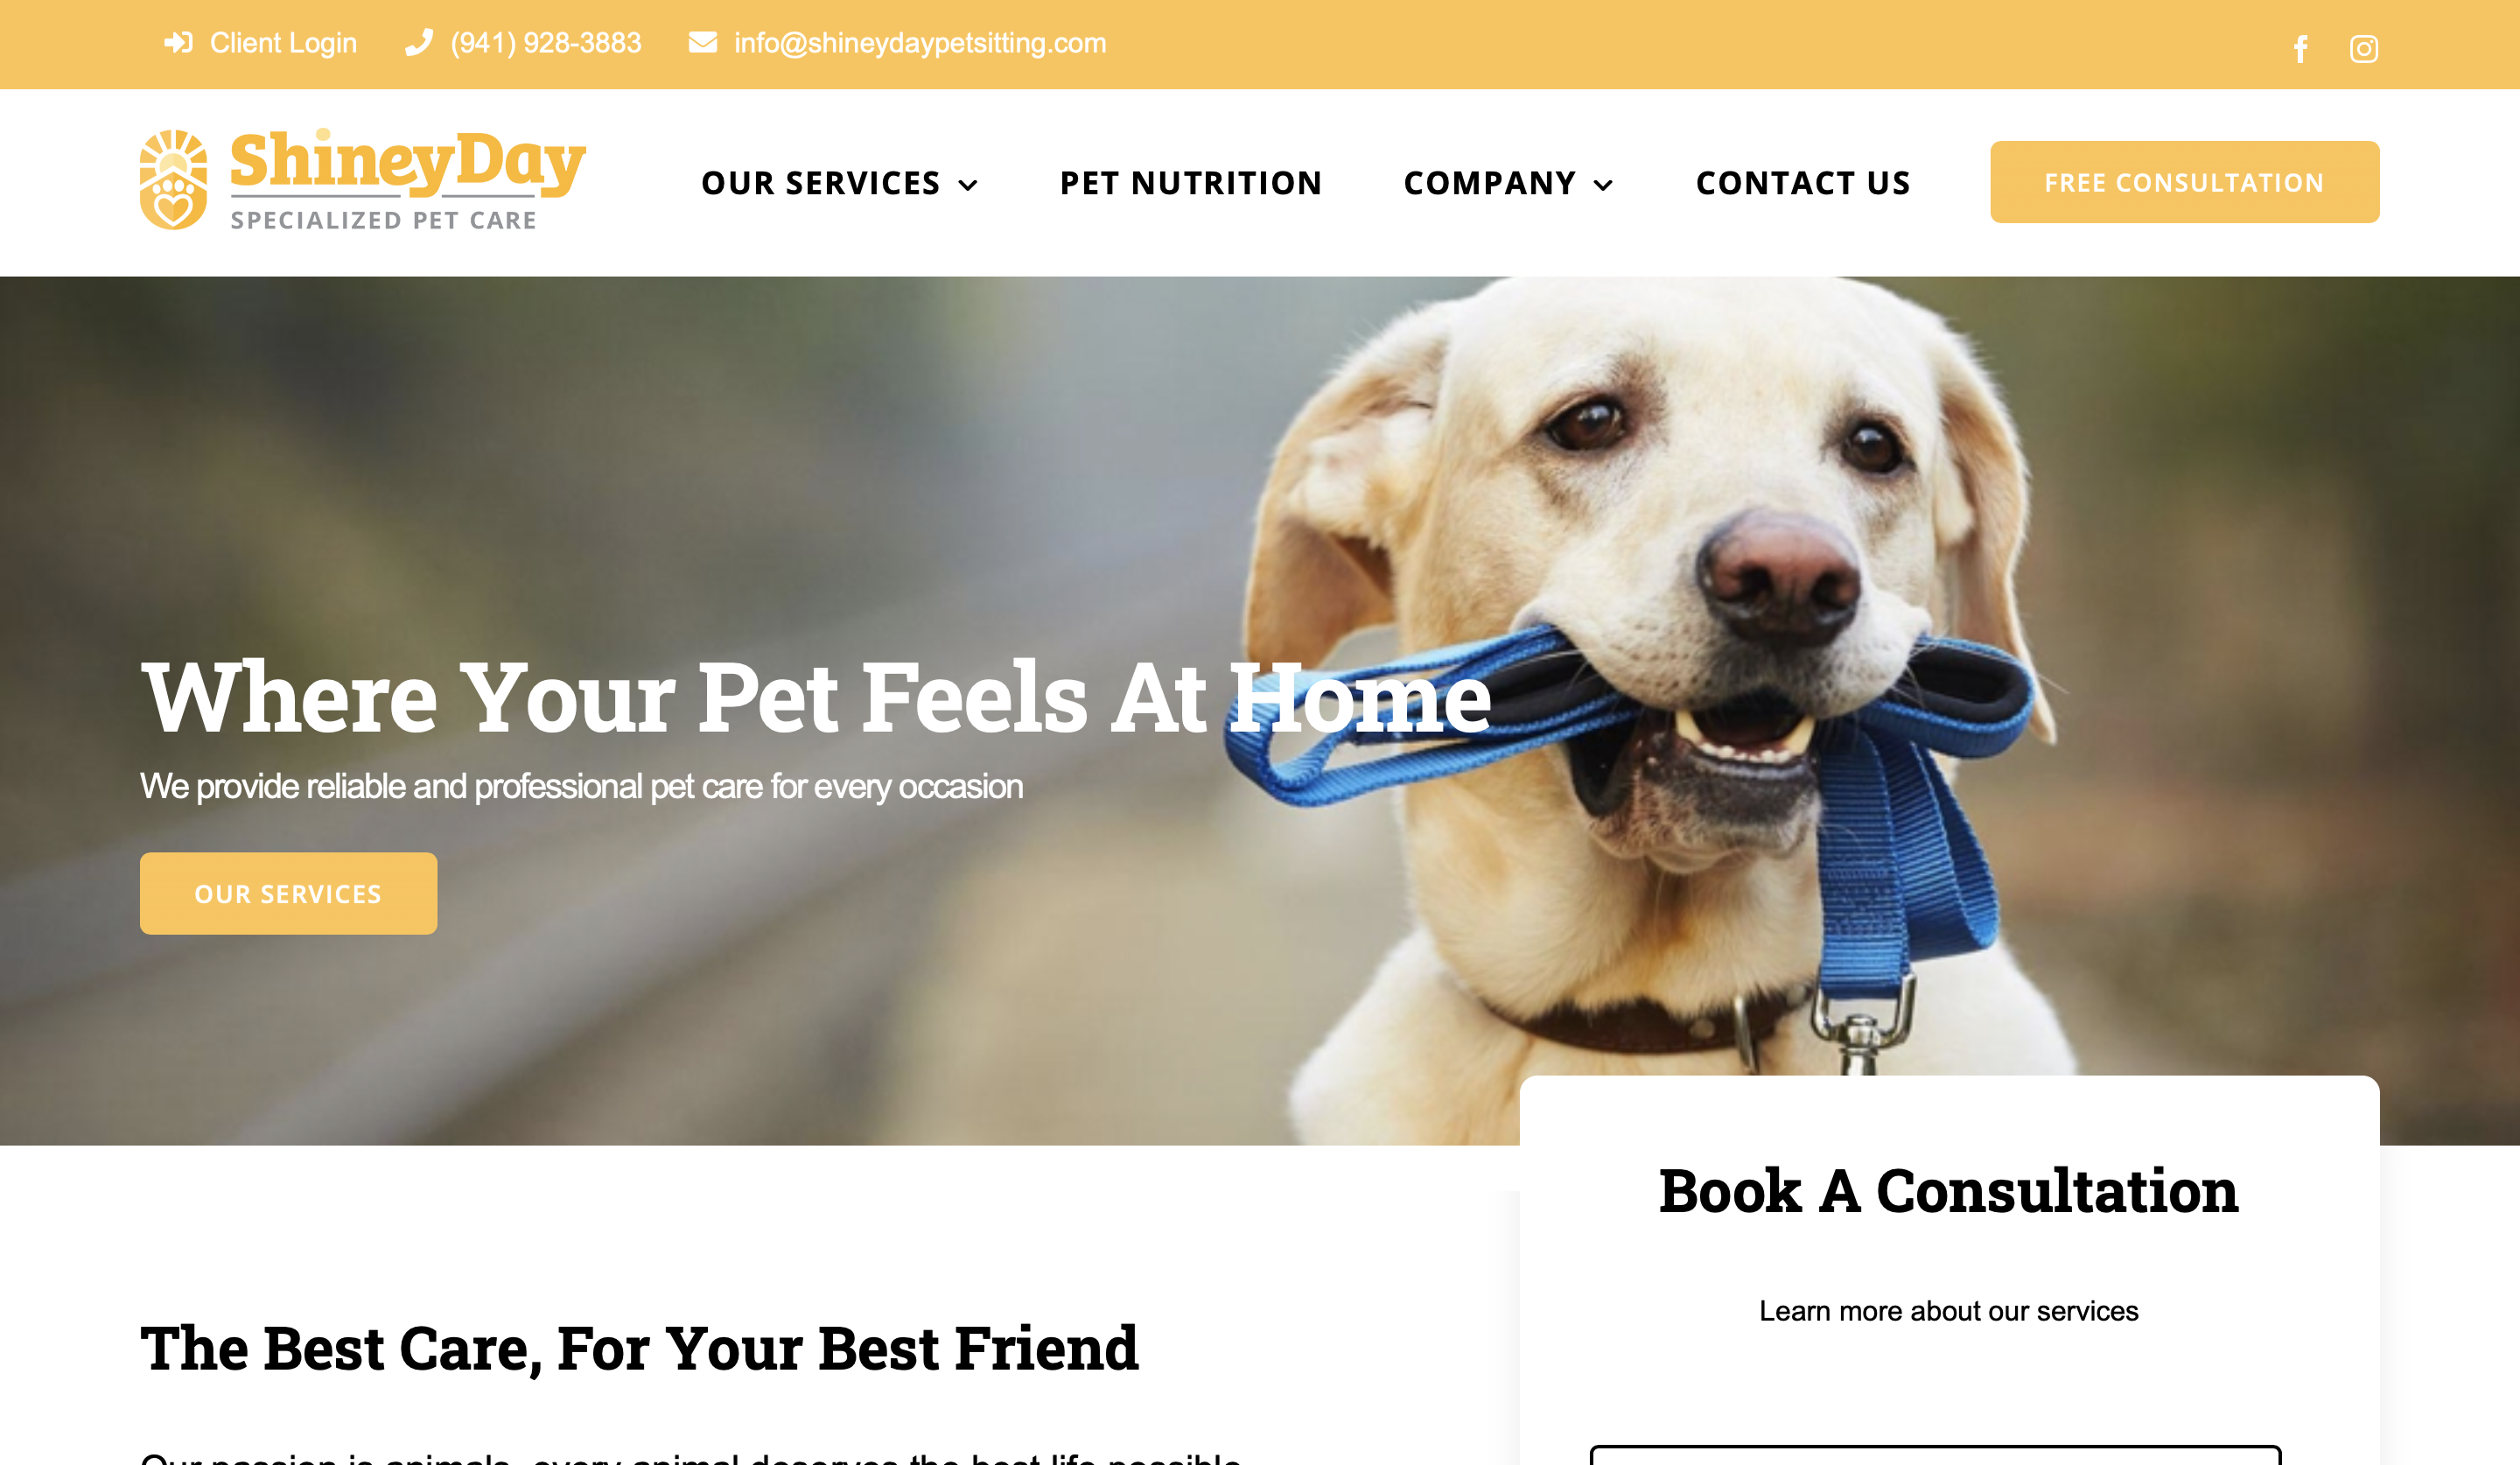 Shiney Day Specialized Pet Care